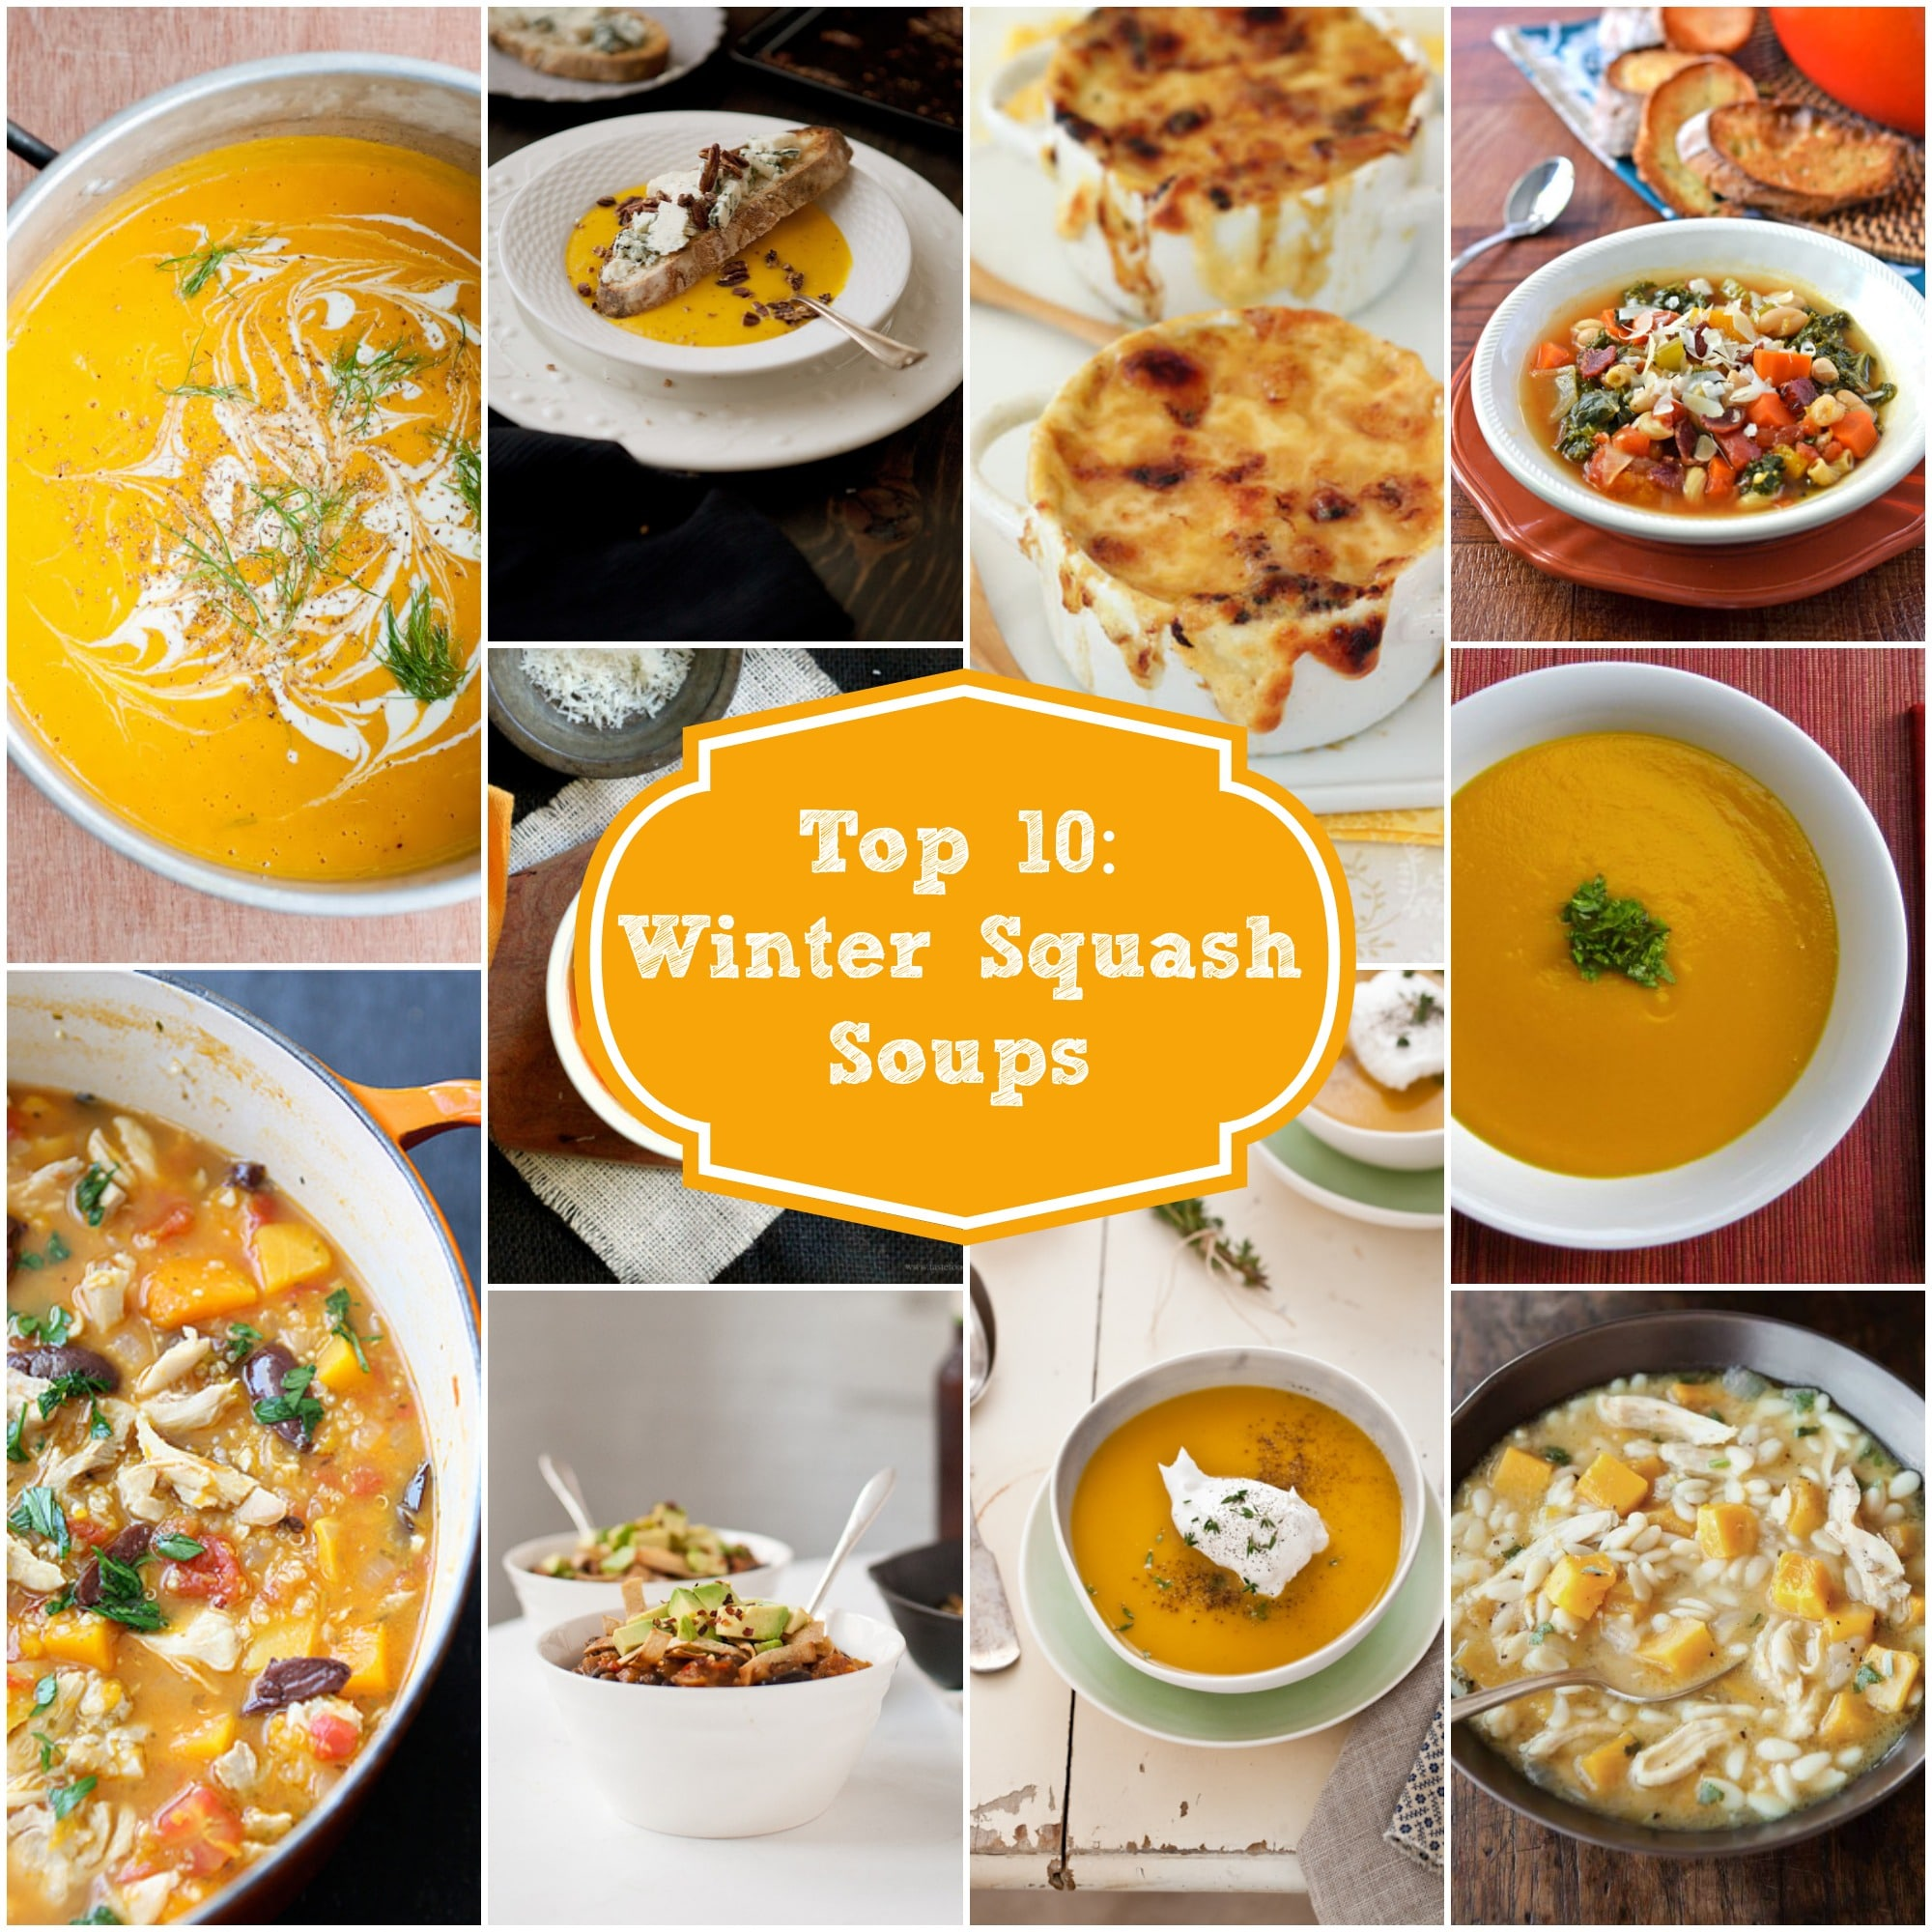 Top 10 Winter Squash Soups from Rainbow Delicious.jpg